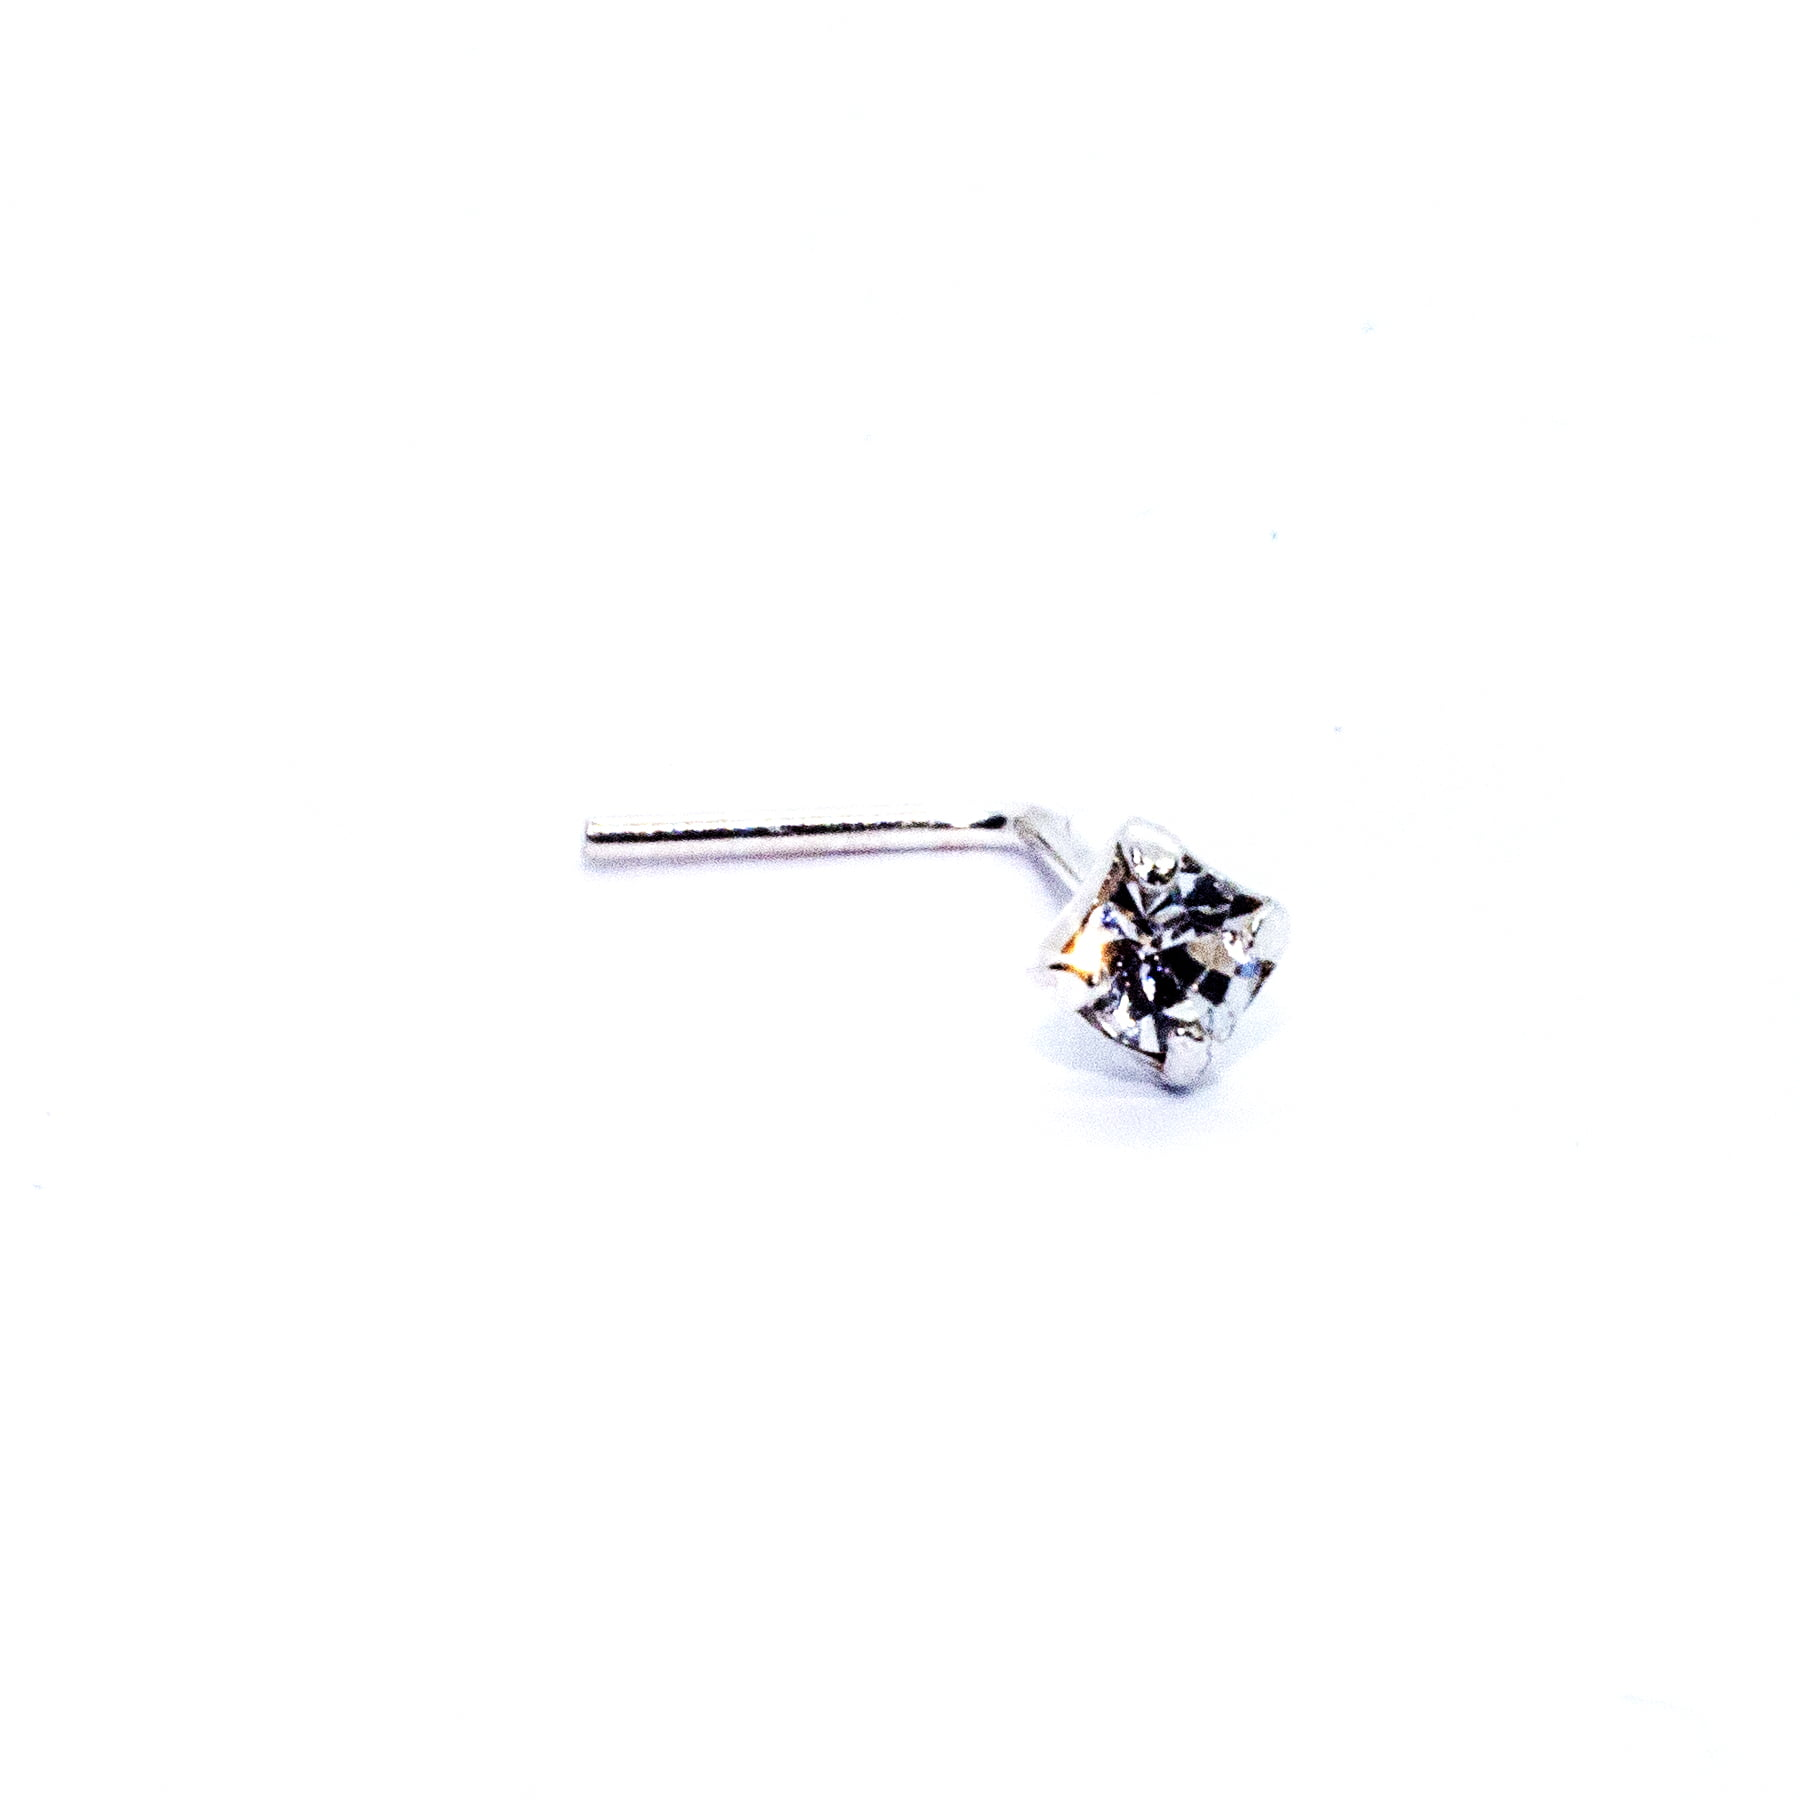 Small square crystal nose stud in silver (alt2)